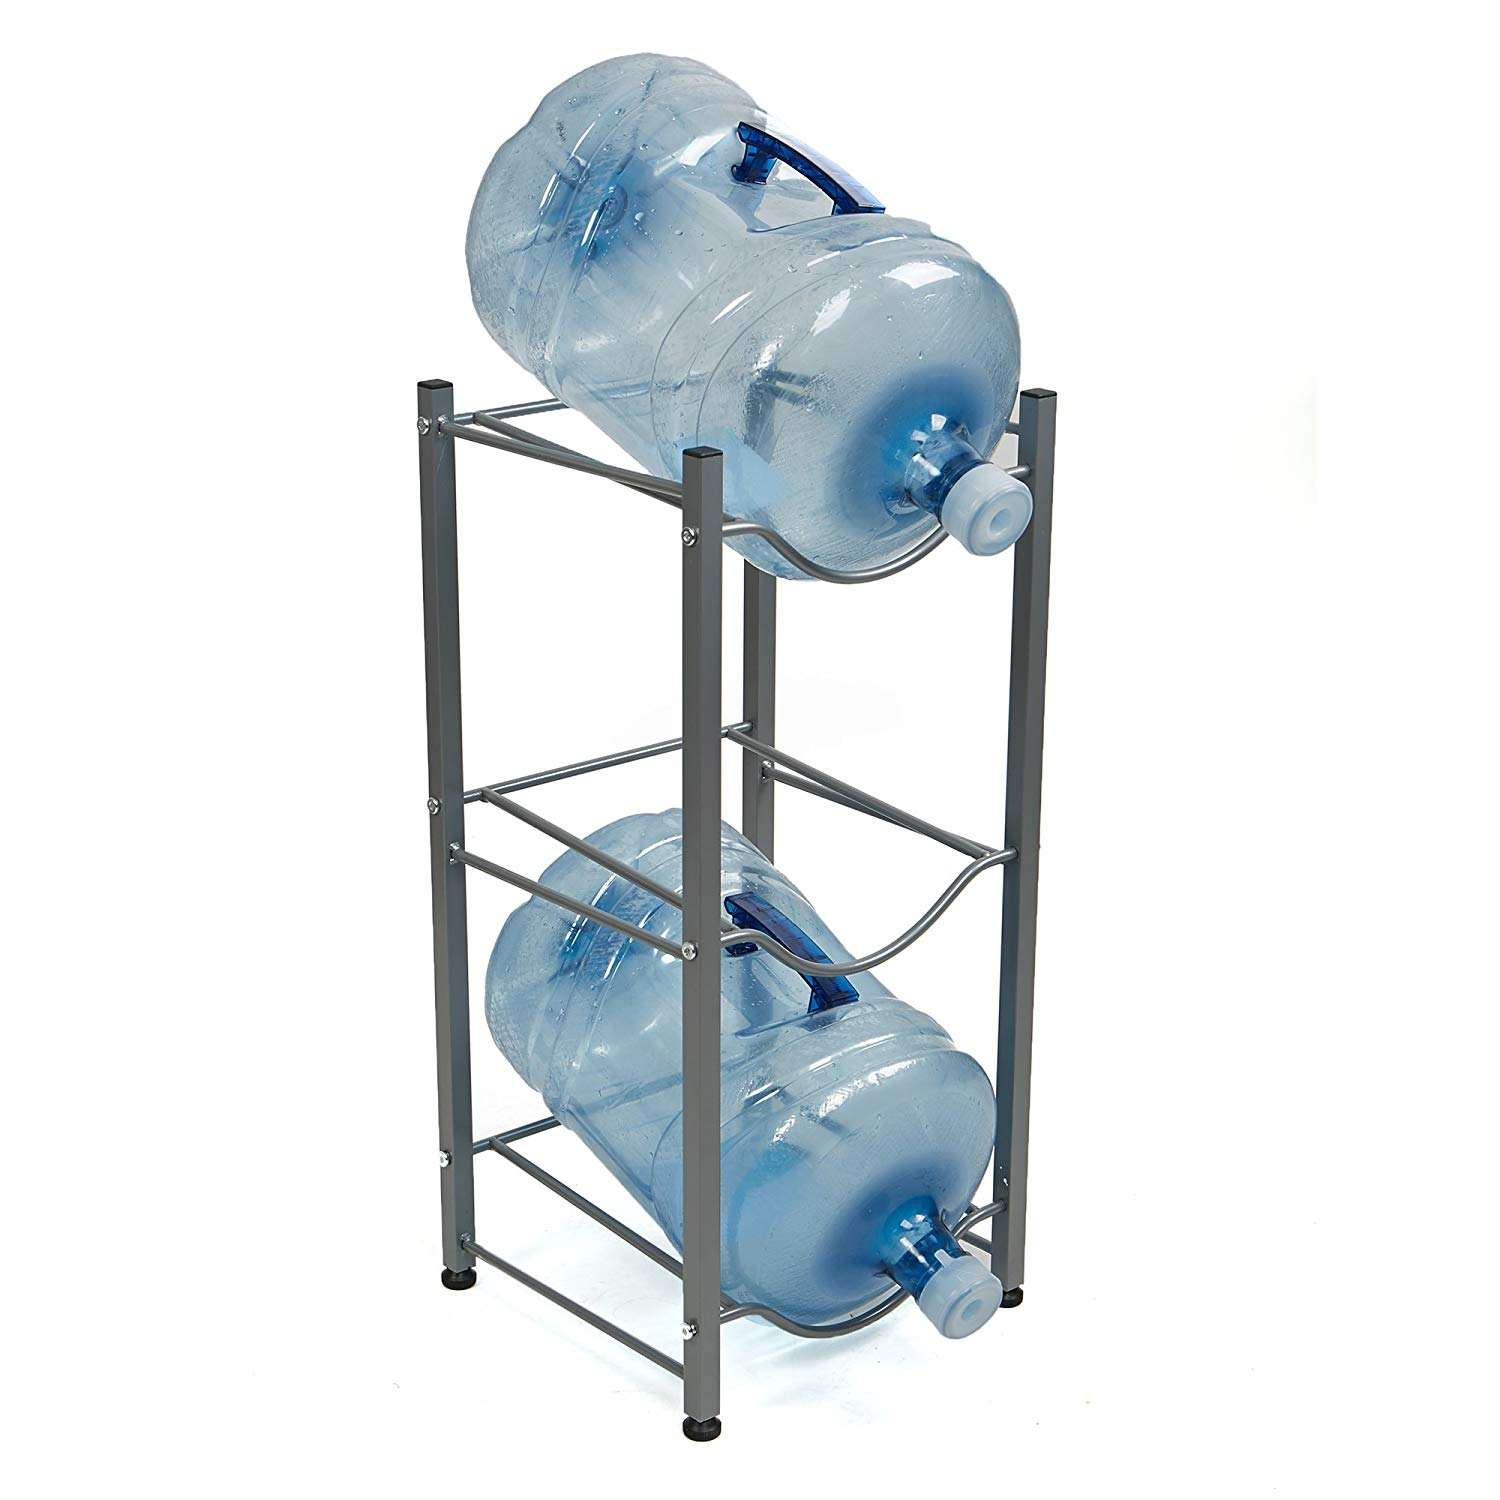 Home supply Wideny powder coated wire metal collapsible water bottle 5 gallon floor standing water dispenser shelf